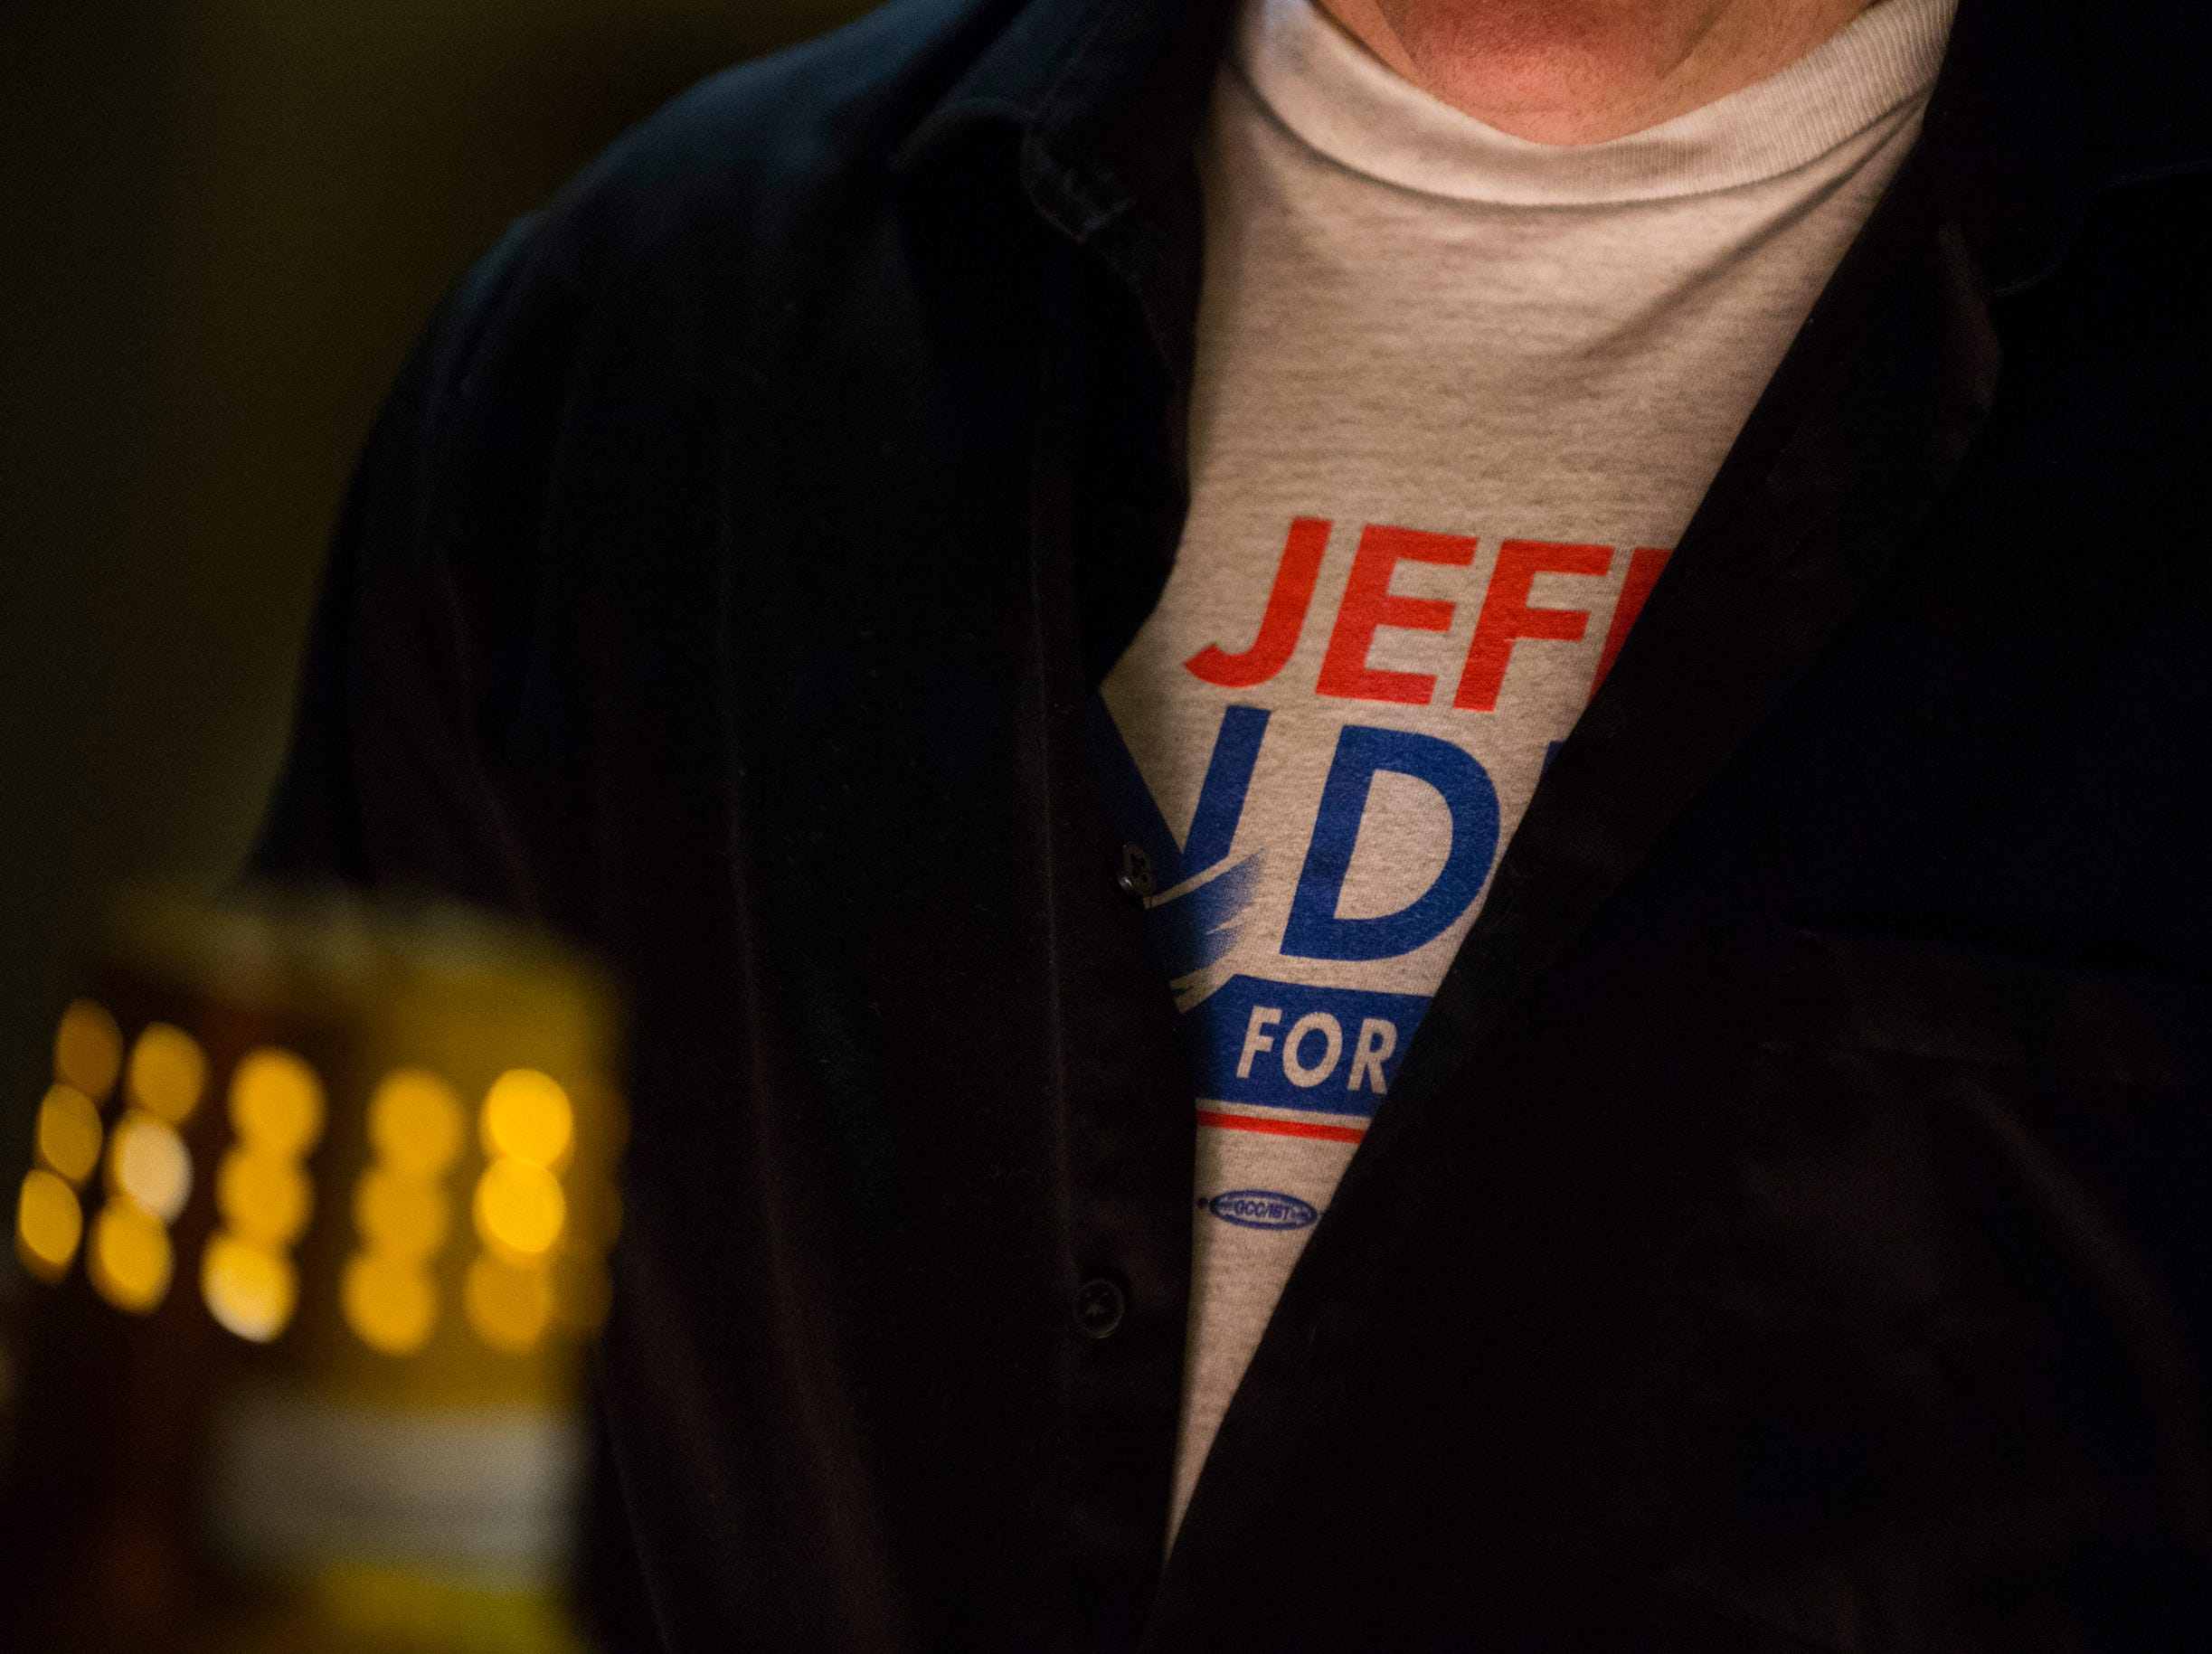 A Jeff Van Drew supporter waits in line for food inside the election nigh headquarters Tuesday, Nov. 6, 2018 at The Claridge Hotel in Atlantic City, N.J.